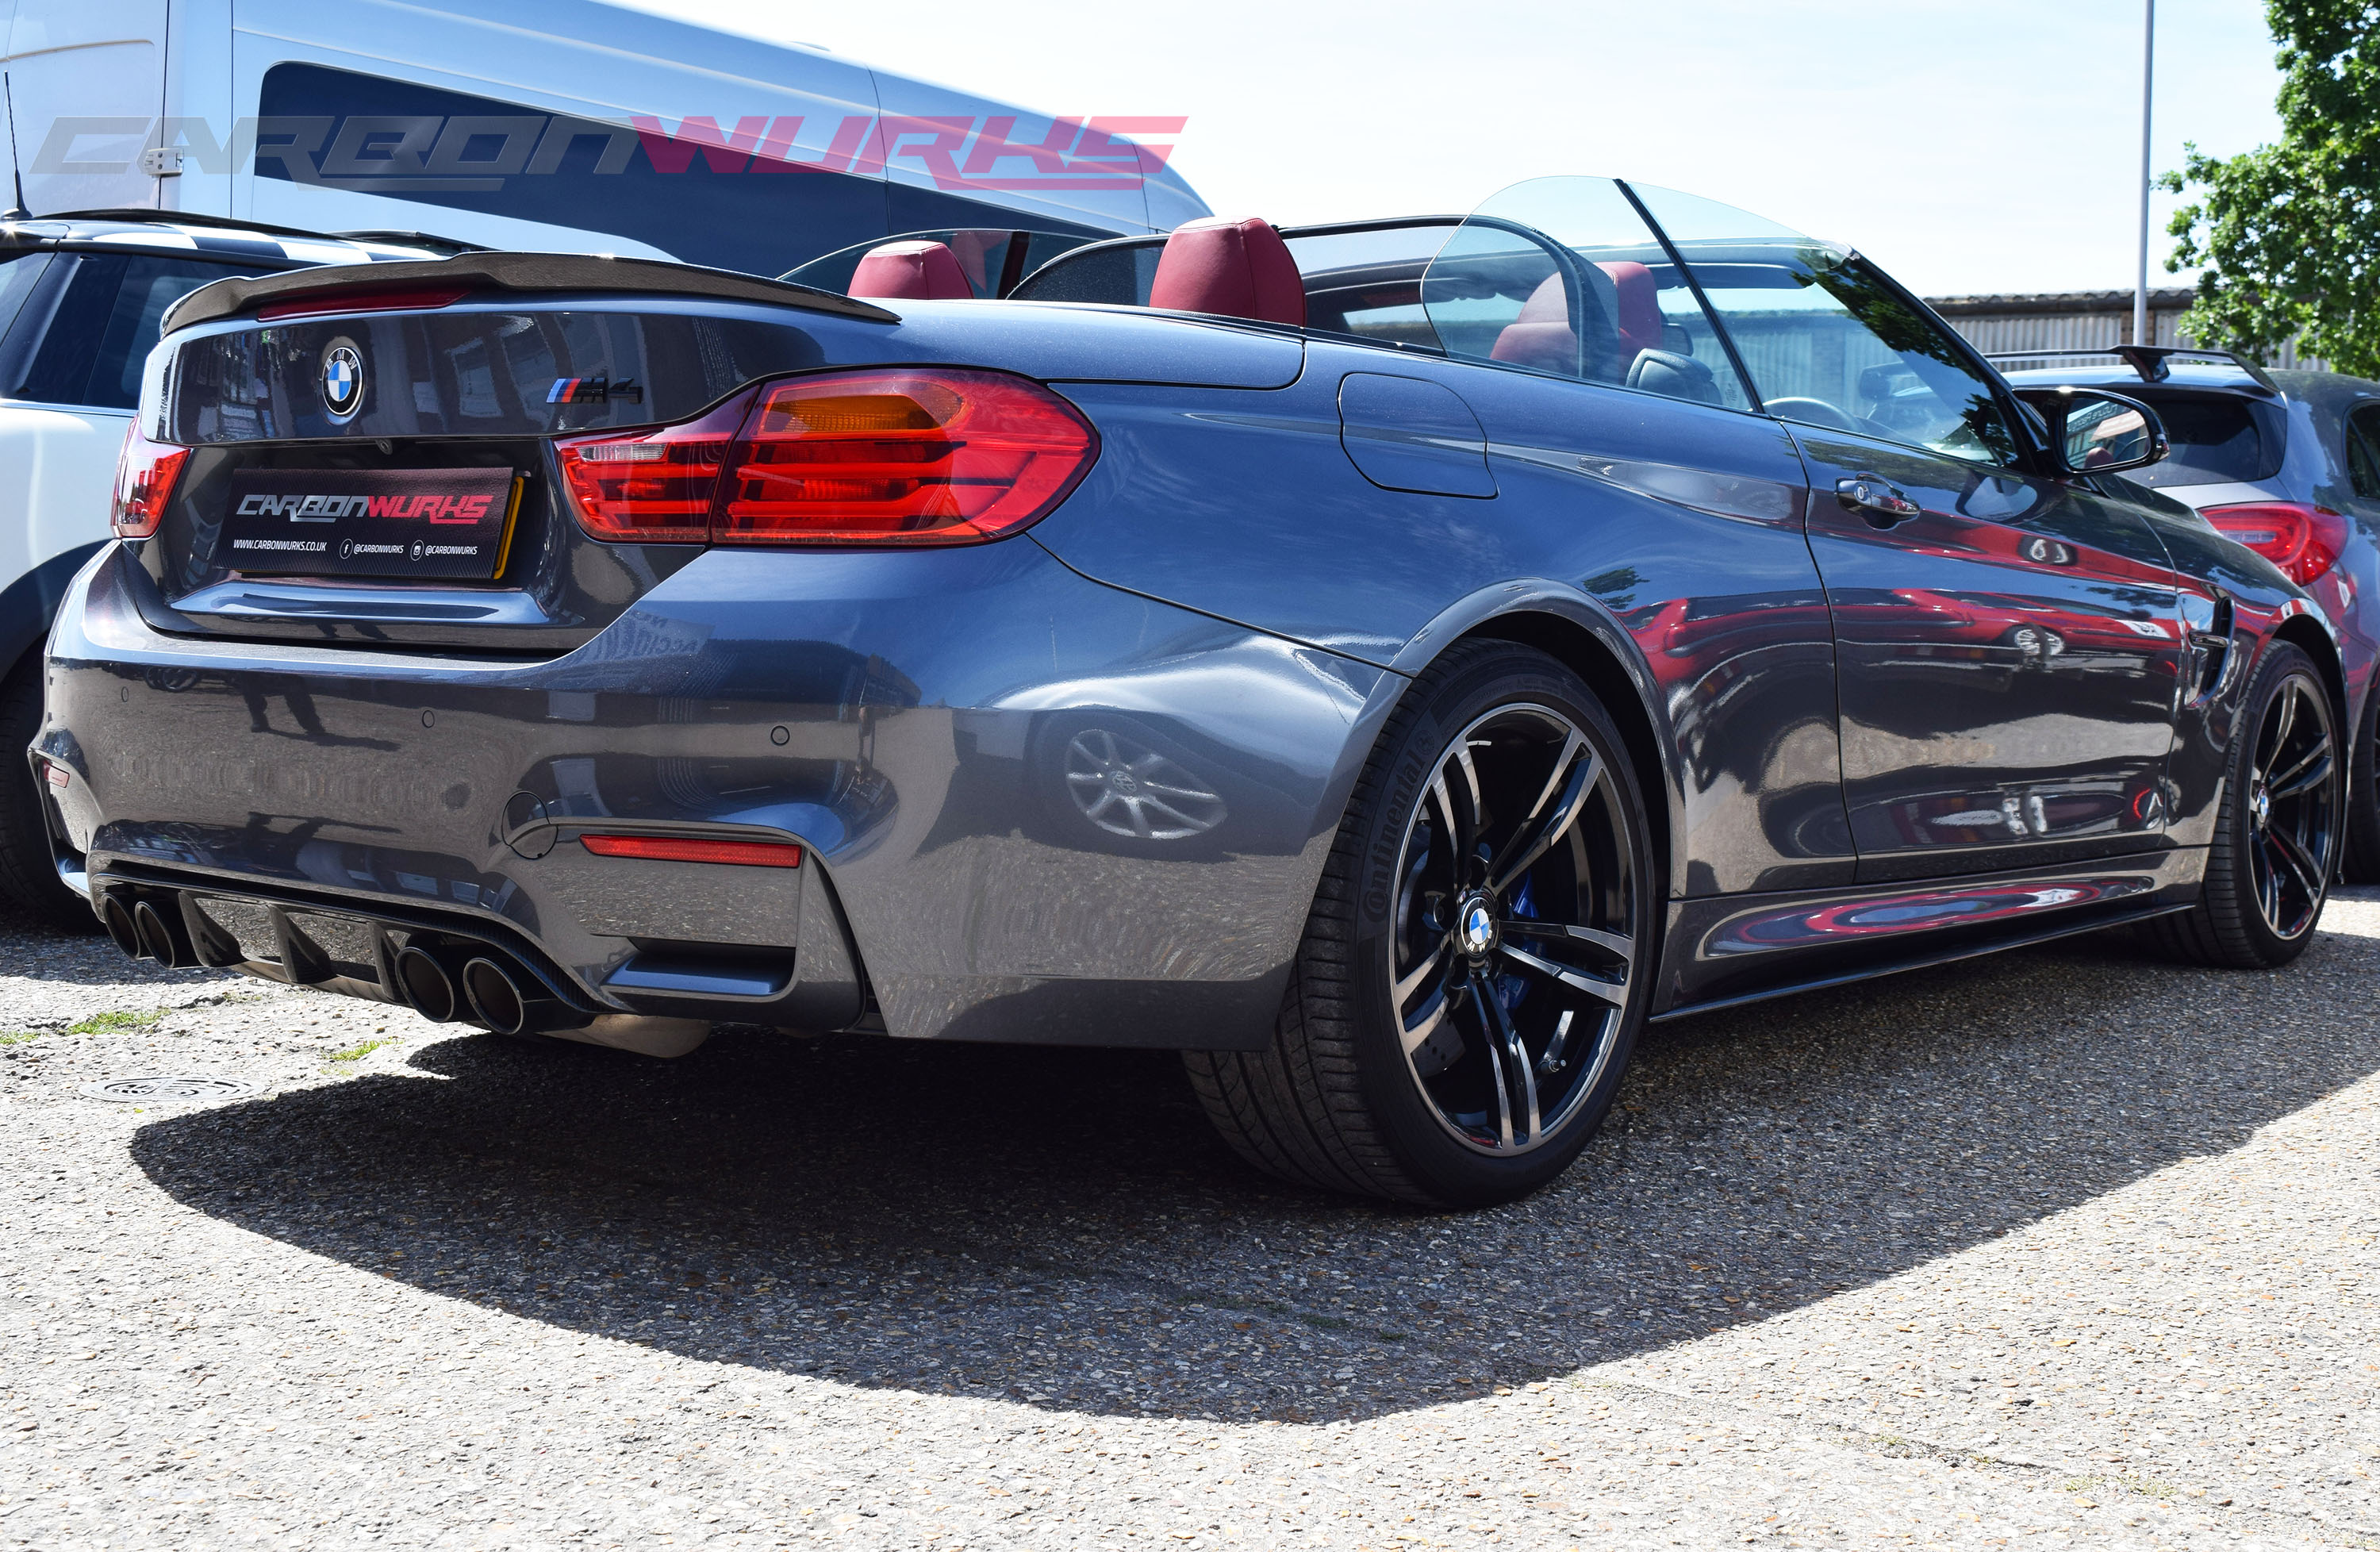 Bmw 428i Convertible 2017 >> CarbonWurks Custom Carbon FibreBMW M4 4 Series Convertible Carbon Fibre Rear Spoiler ...